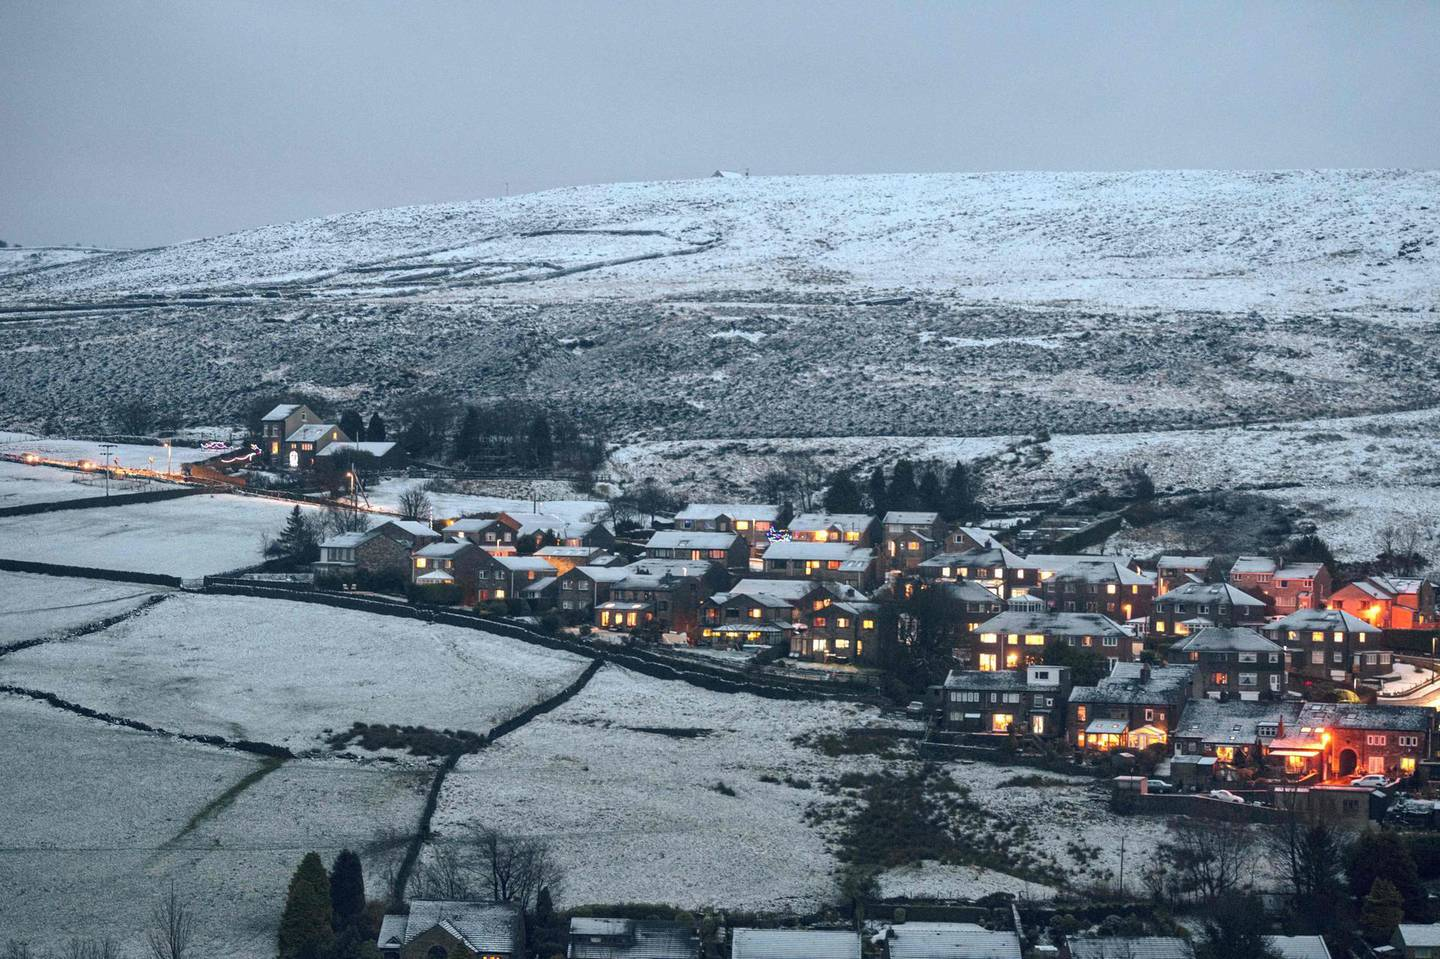 Snow-covered homes are illuminated at dusk in the village of Marsden, near Manchester in northern England on December 4, 2020. / AFP / OLI SCARFF